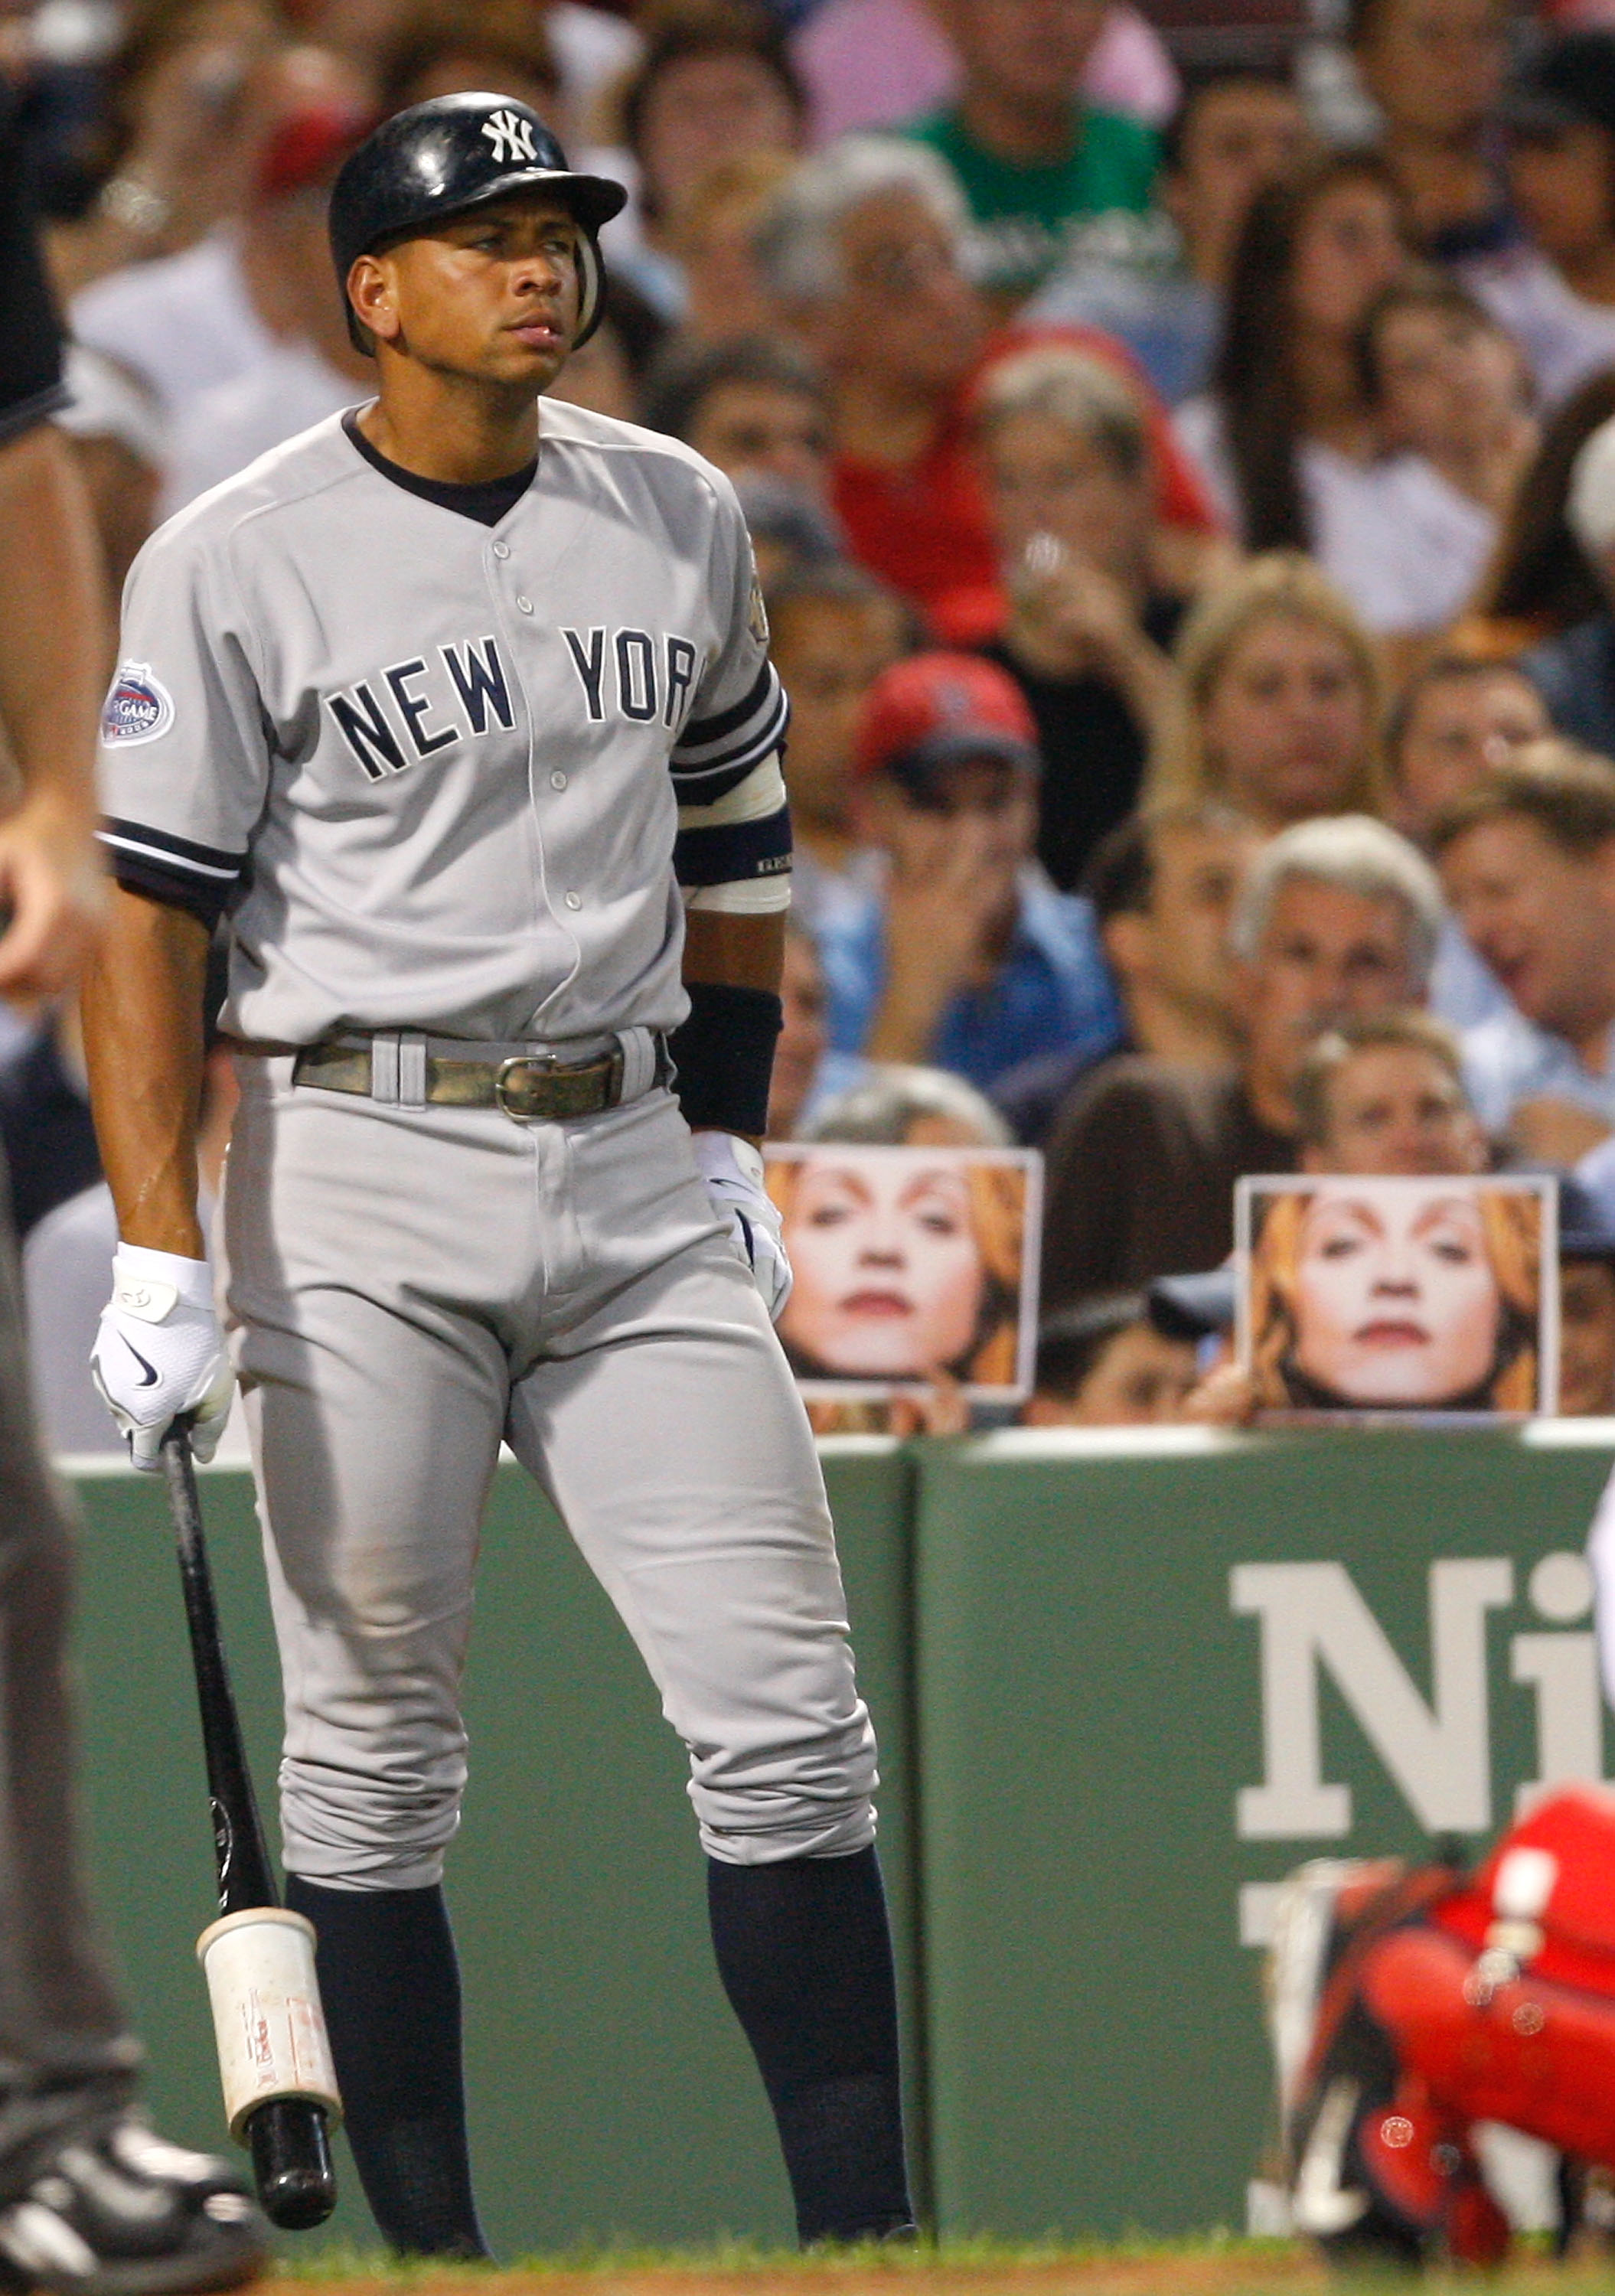 BOSTON - JULY 25: Fans hold pictures of Madonna as Alex Rodriguez #13 of the New York Yankees prepares to bat against the Boston Red Sox at Fenway Park on July 25, 2008 in Boston, Massachusetts.  (Photo by Jim Rogash/Getty Images)